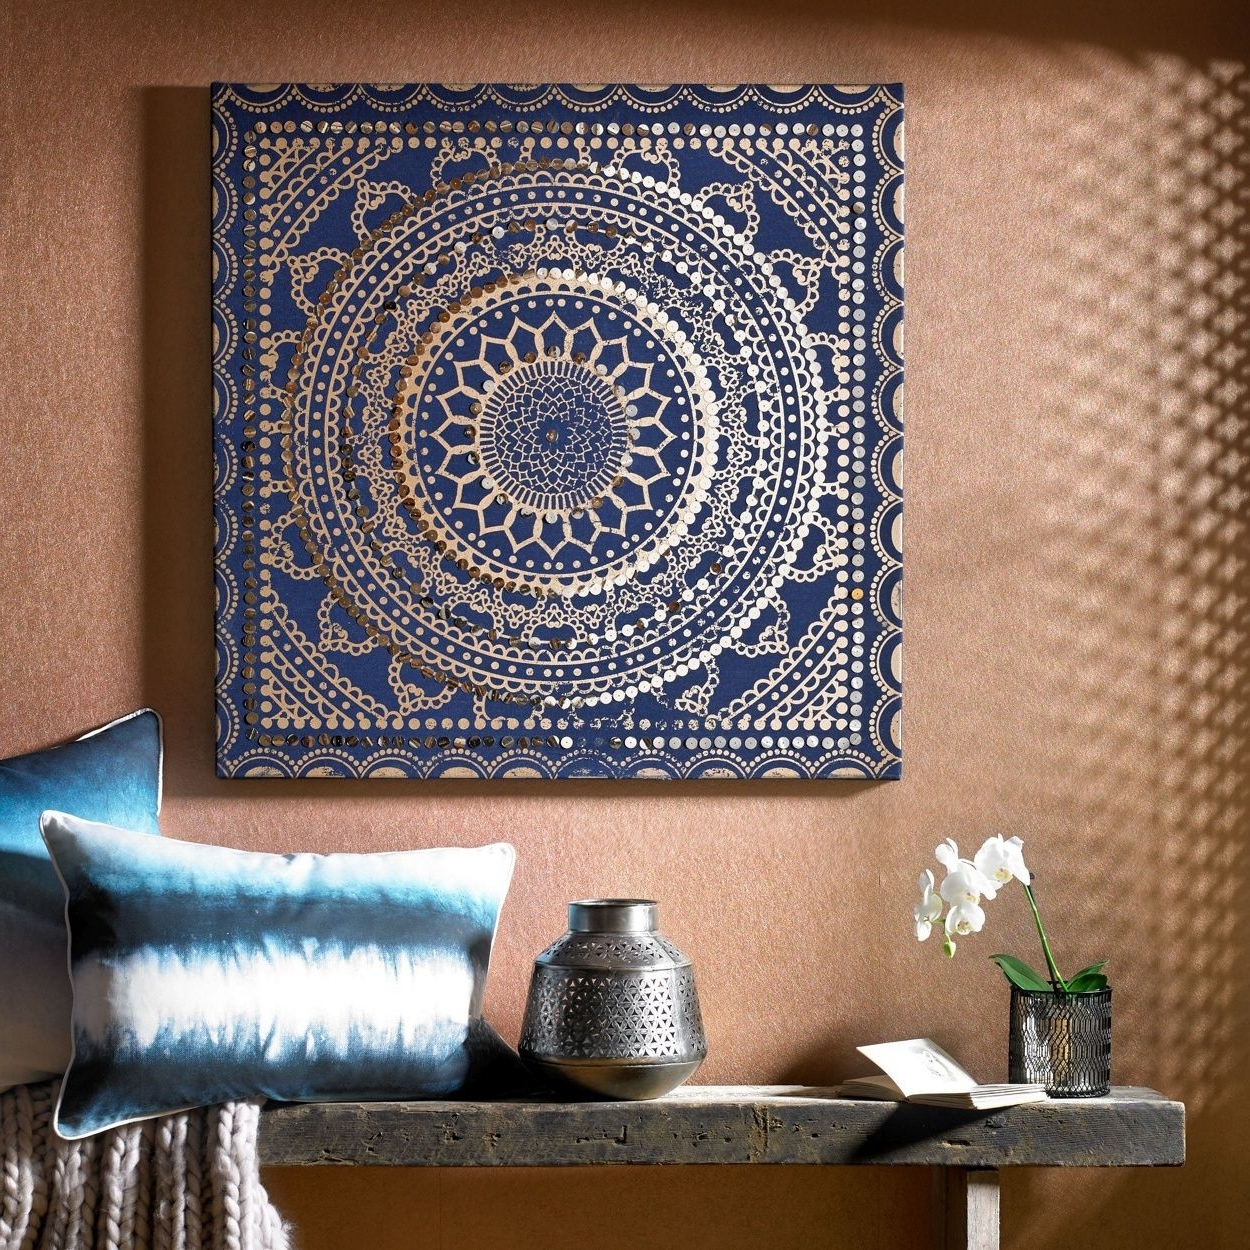 Fashionable Make A Statement With This Moroccan Inspired Fabric Canvas (View 13 of 15)